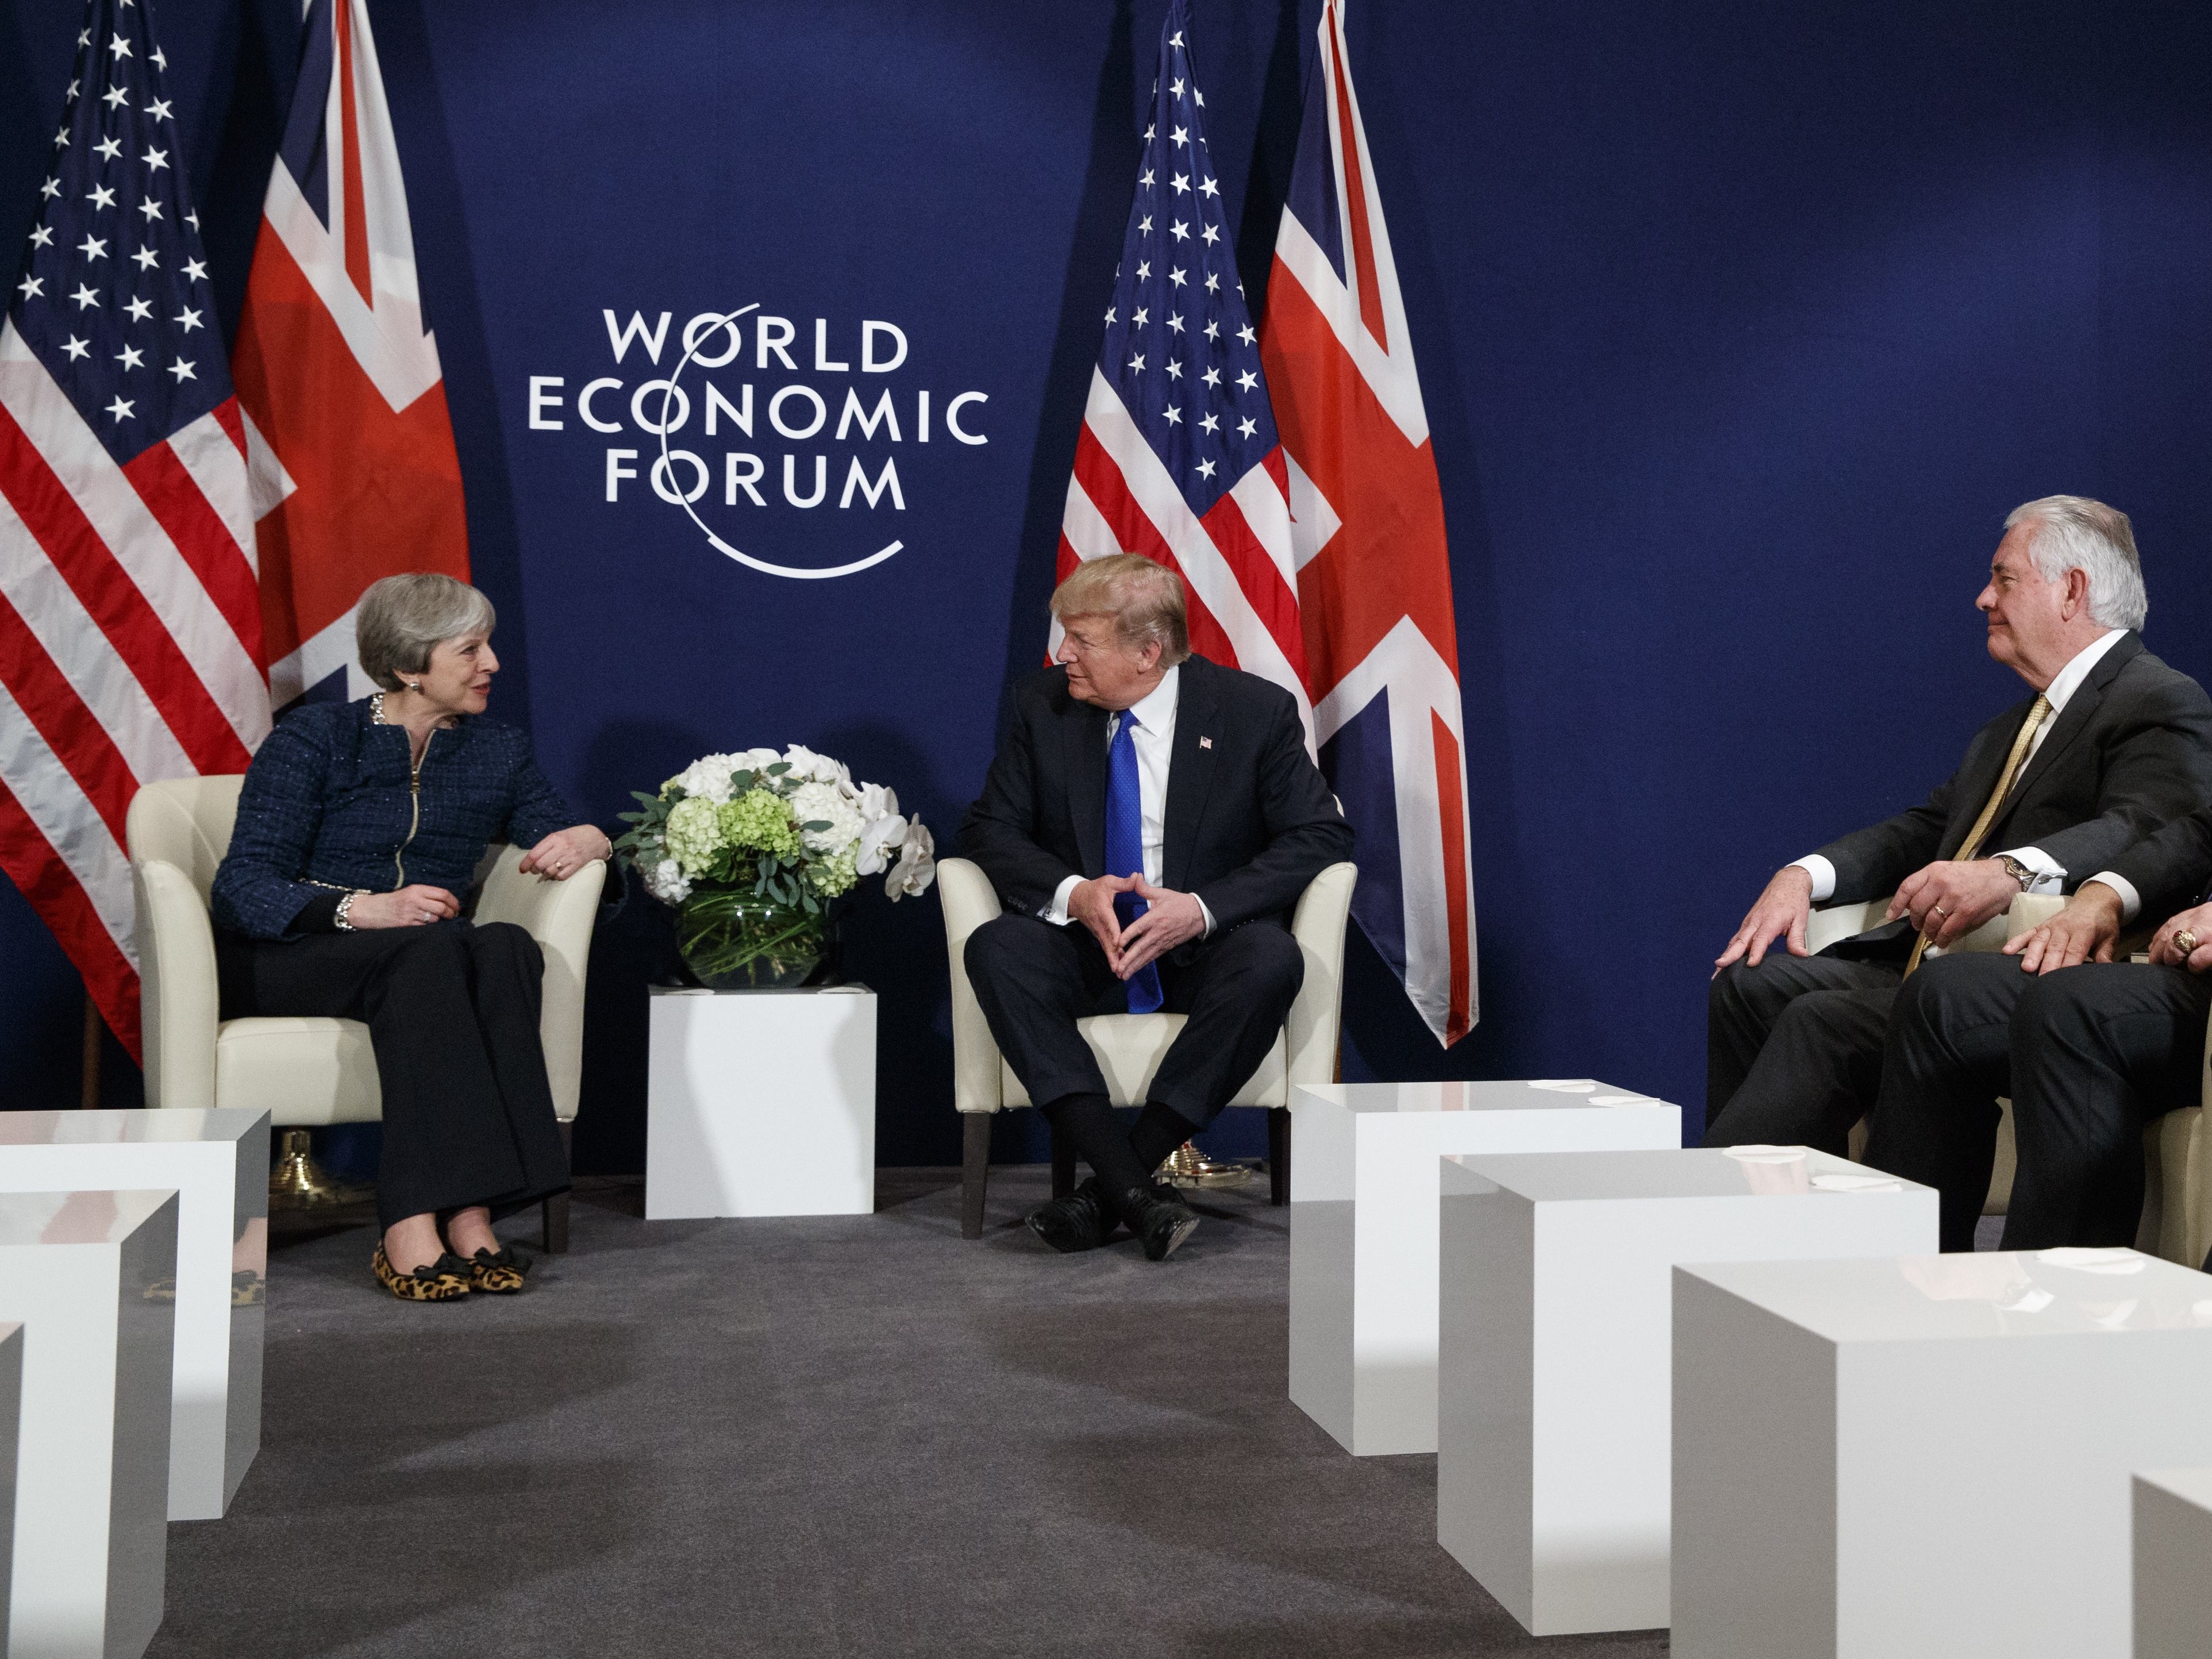 Davos provides the location for the latest meeting between Donald Trump and Theresa May (Evan Vucci/AP)